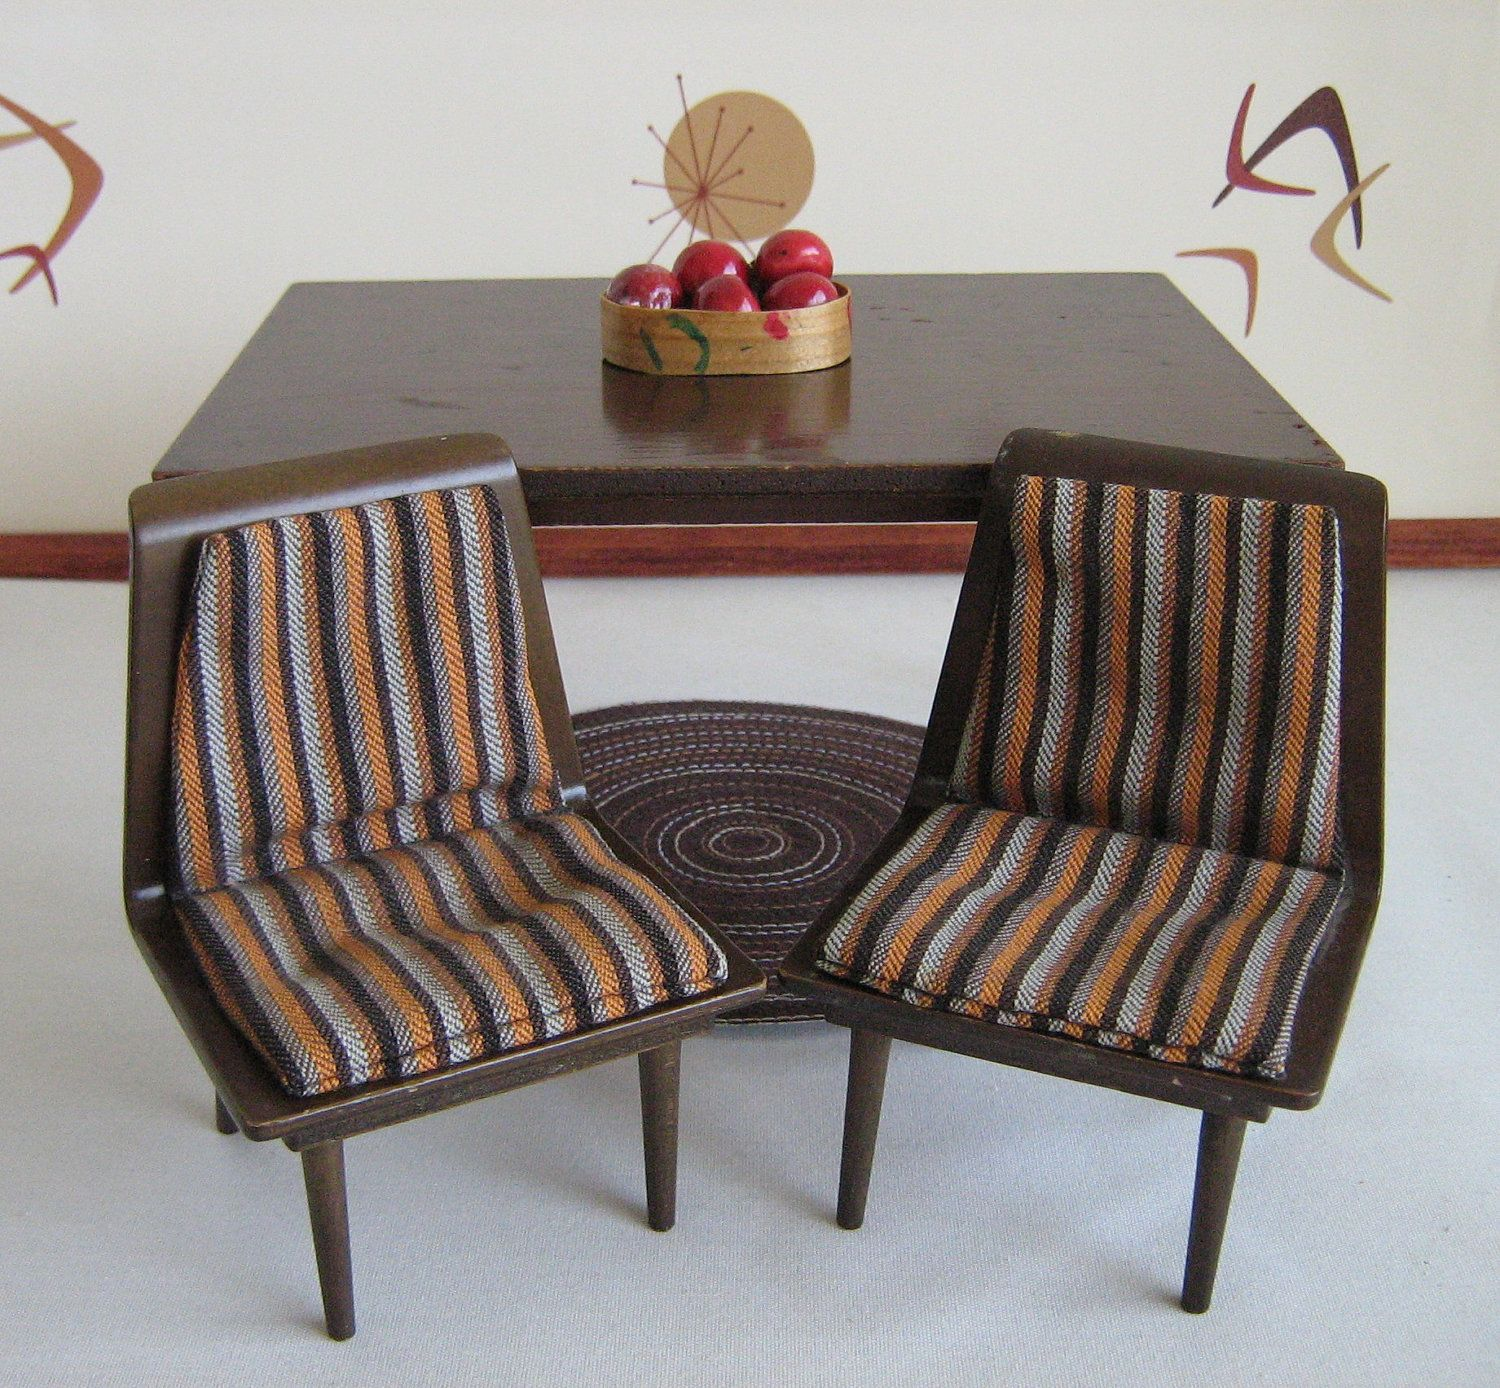 mattel modern mid century doll furniture room for young ones